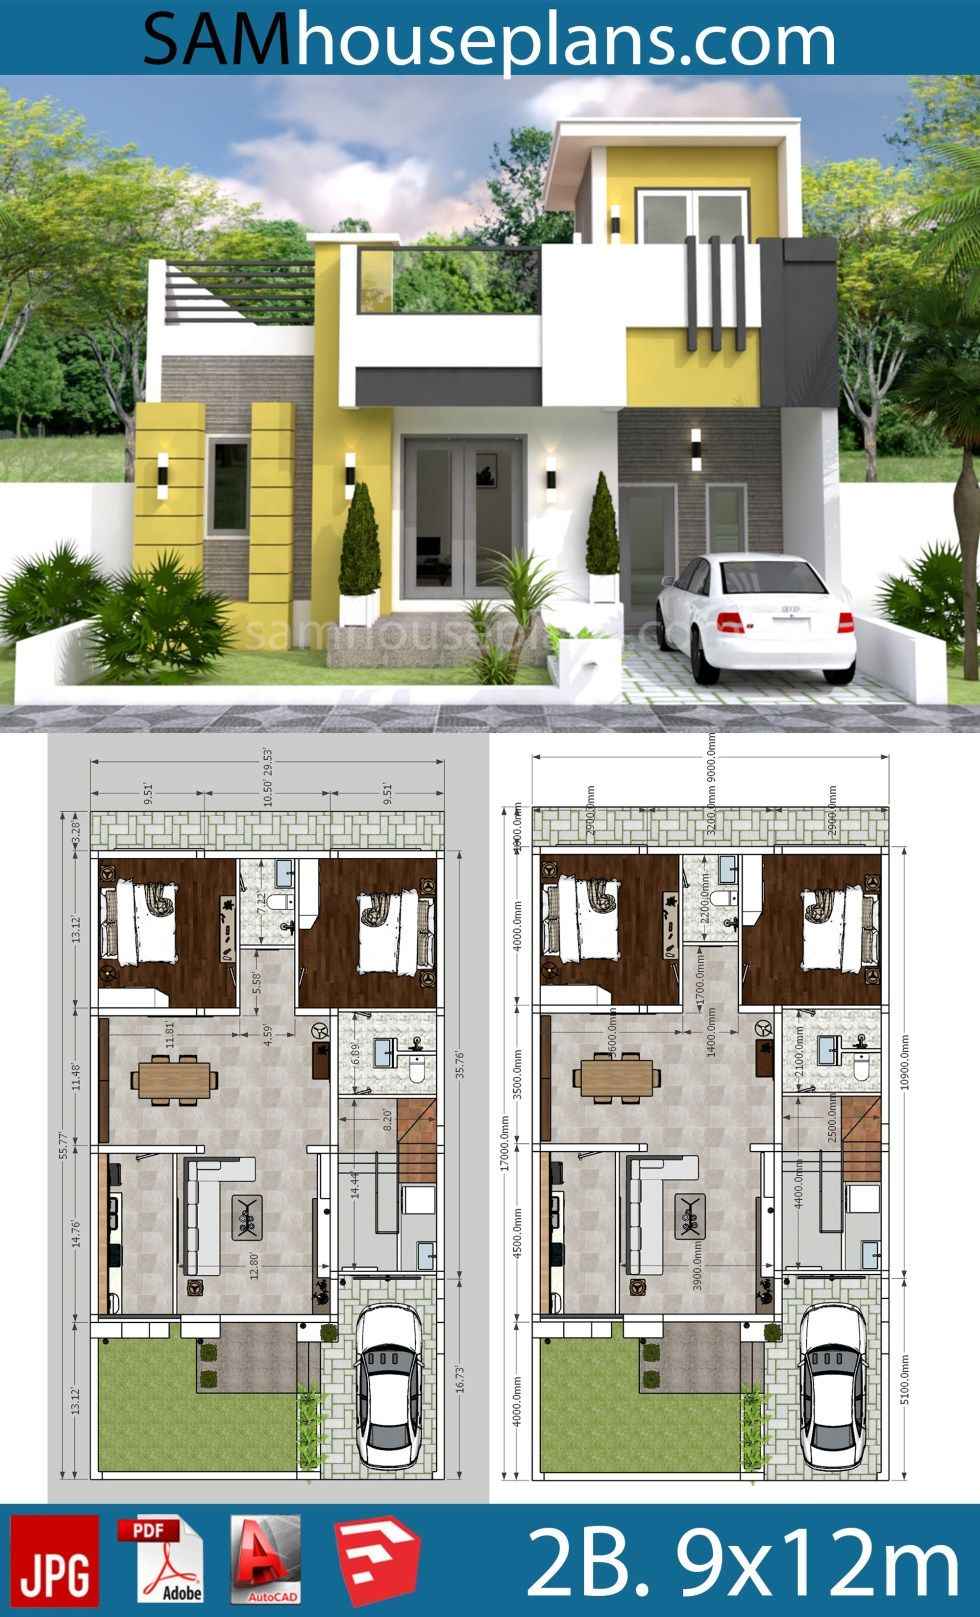 House Plans 9x12m With 2 Bedrooms Sam House Plans Kerala House Design House Roof Design House Plans